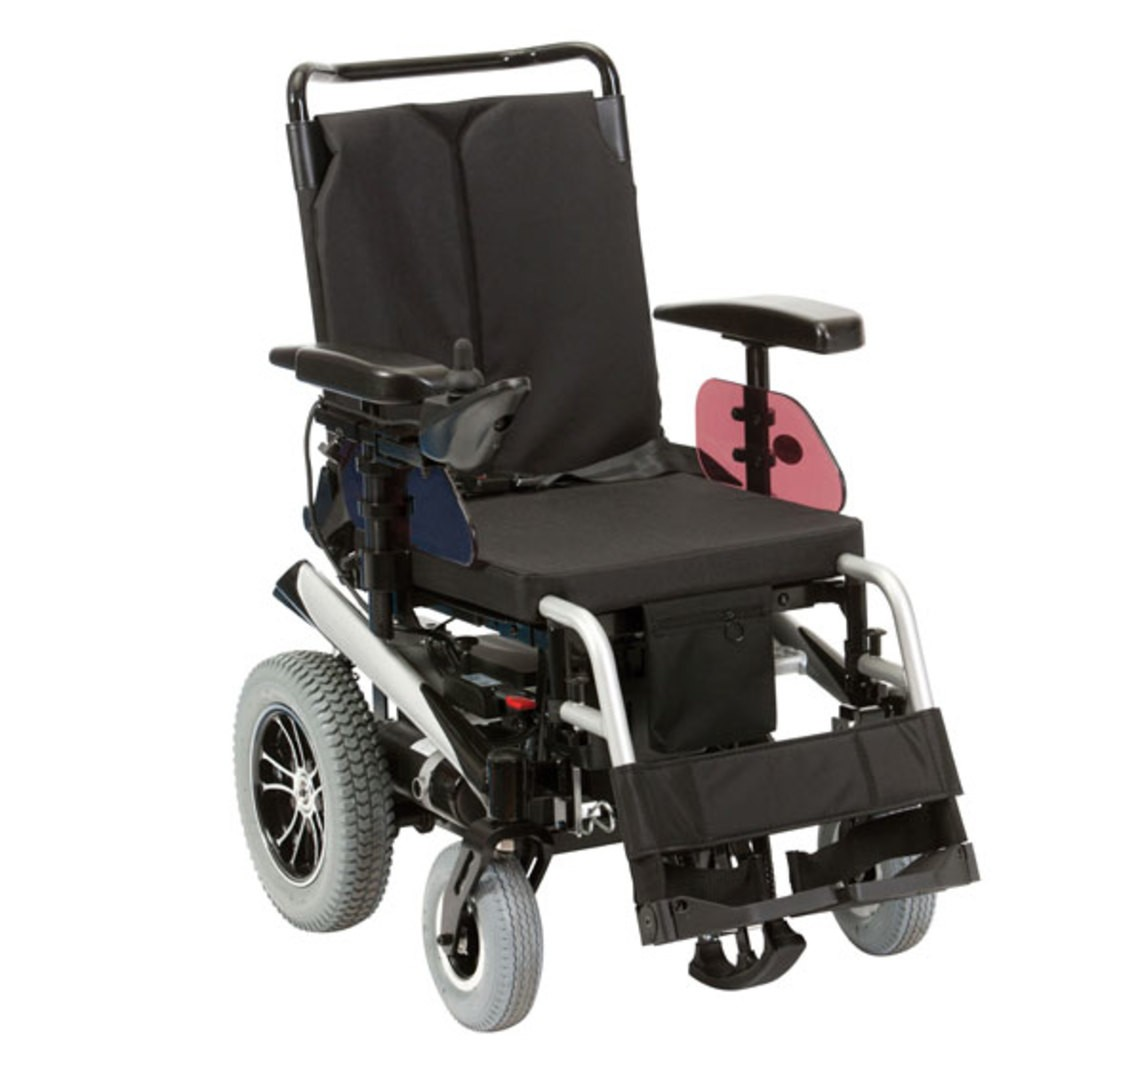 Electric Wheel Chairs Days Volt Electric Wheelchair At Low Prices Uk Wheelchairs